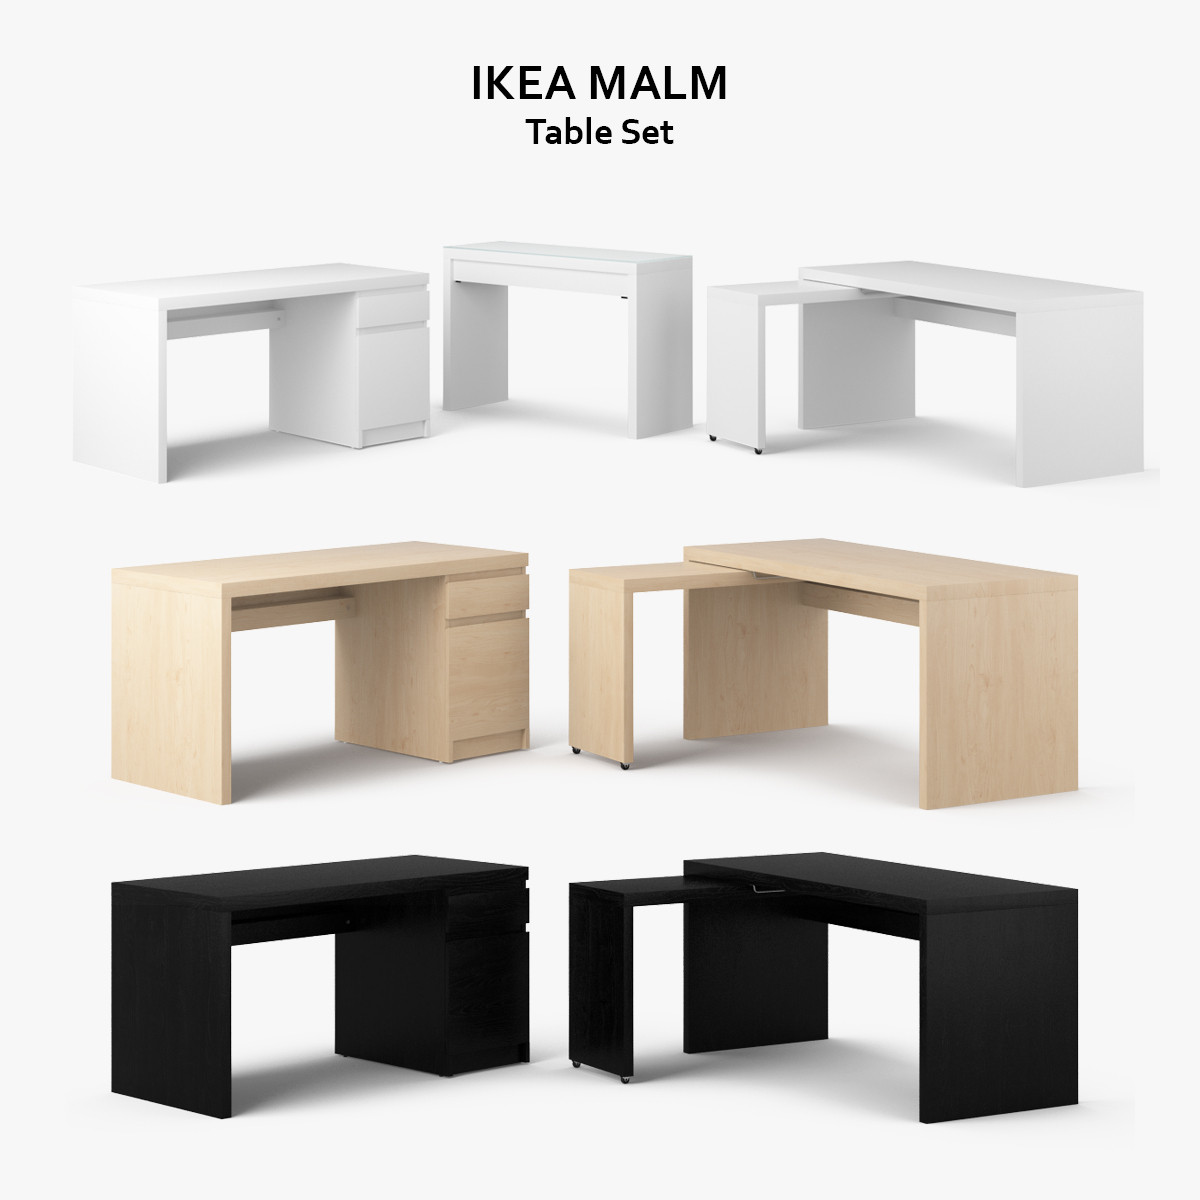 3d model ikea malm table set. Black Bedroom Furniture Sets. Home Design Ideas